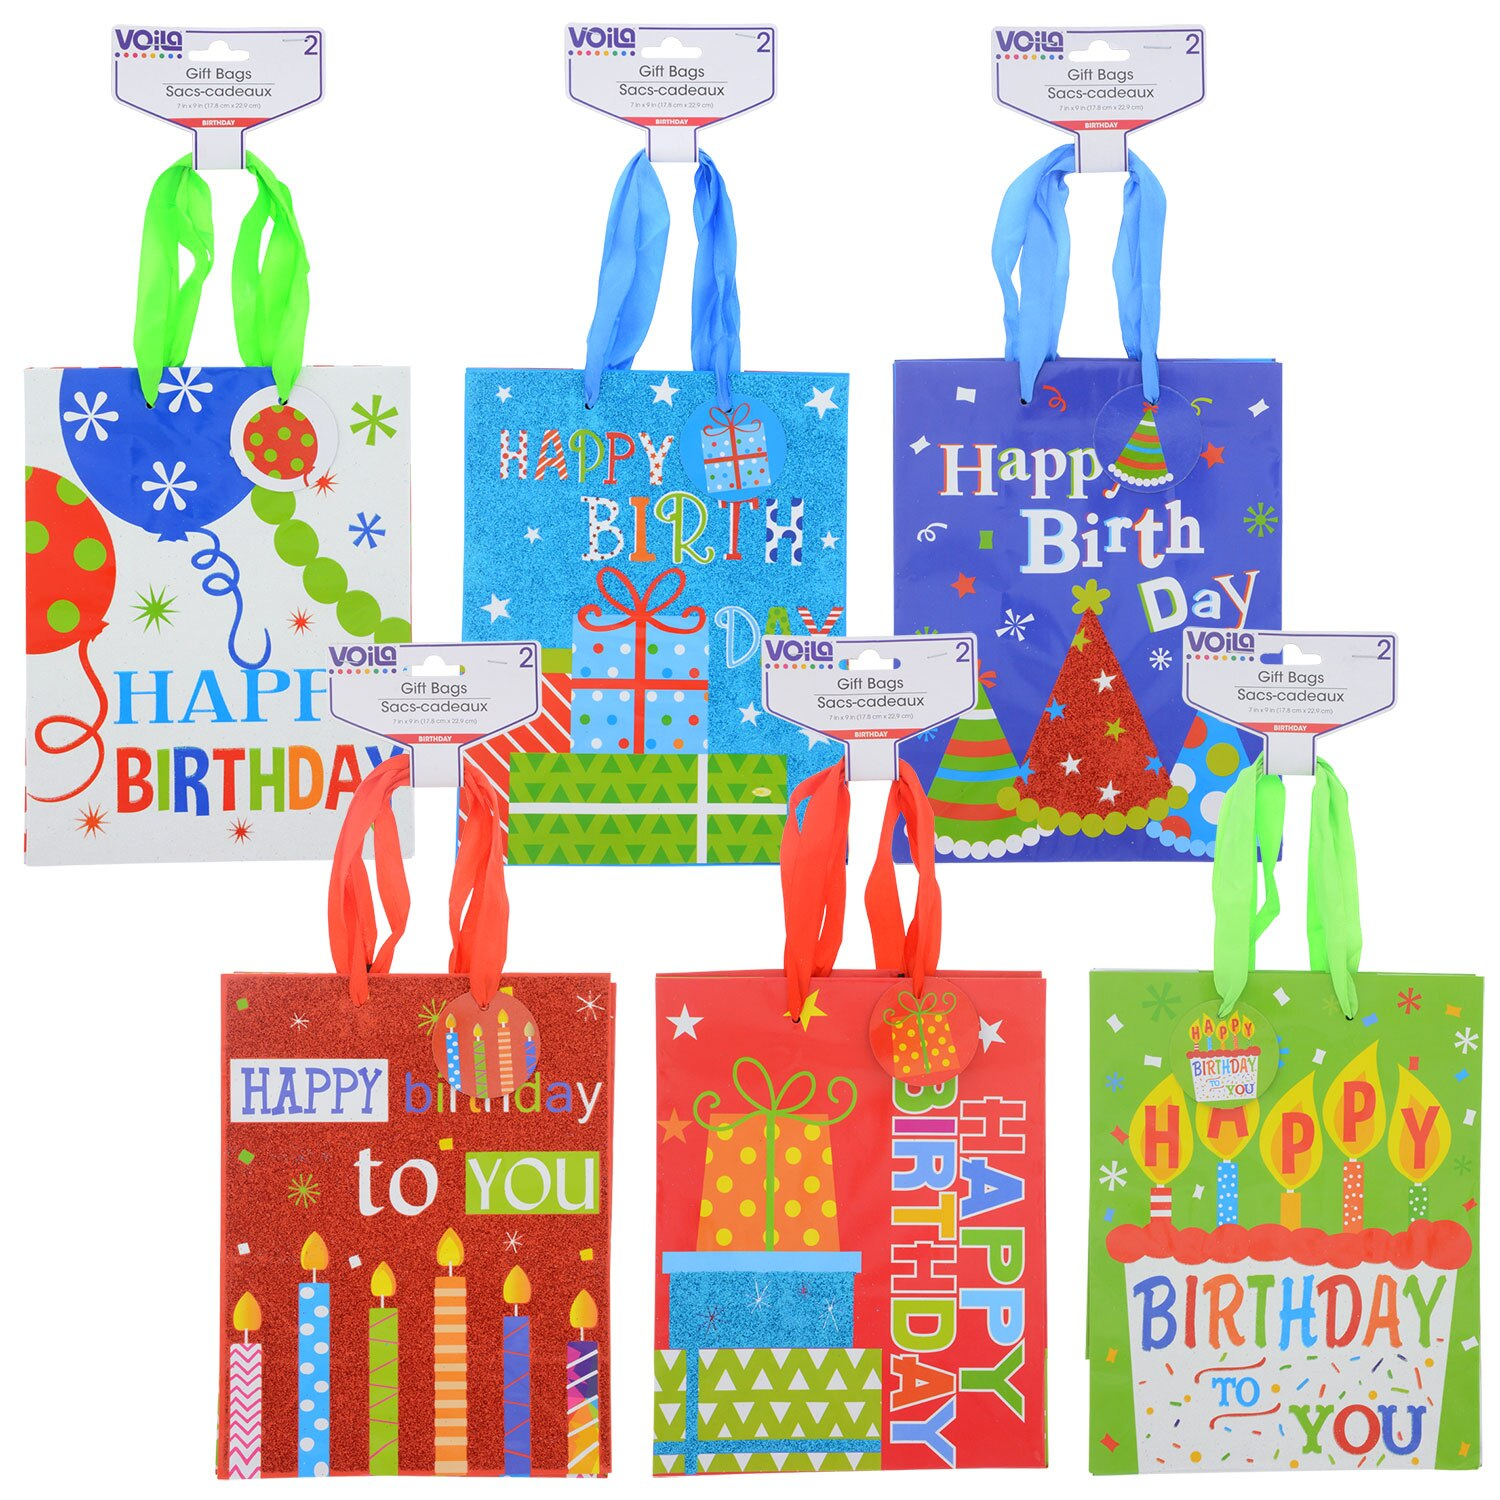 Dollartree Com Bulk Gift Wrap Bags Amp Accessories